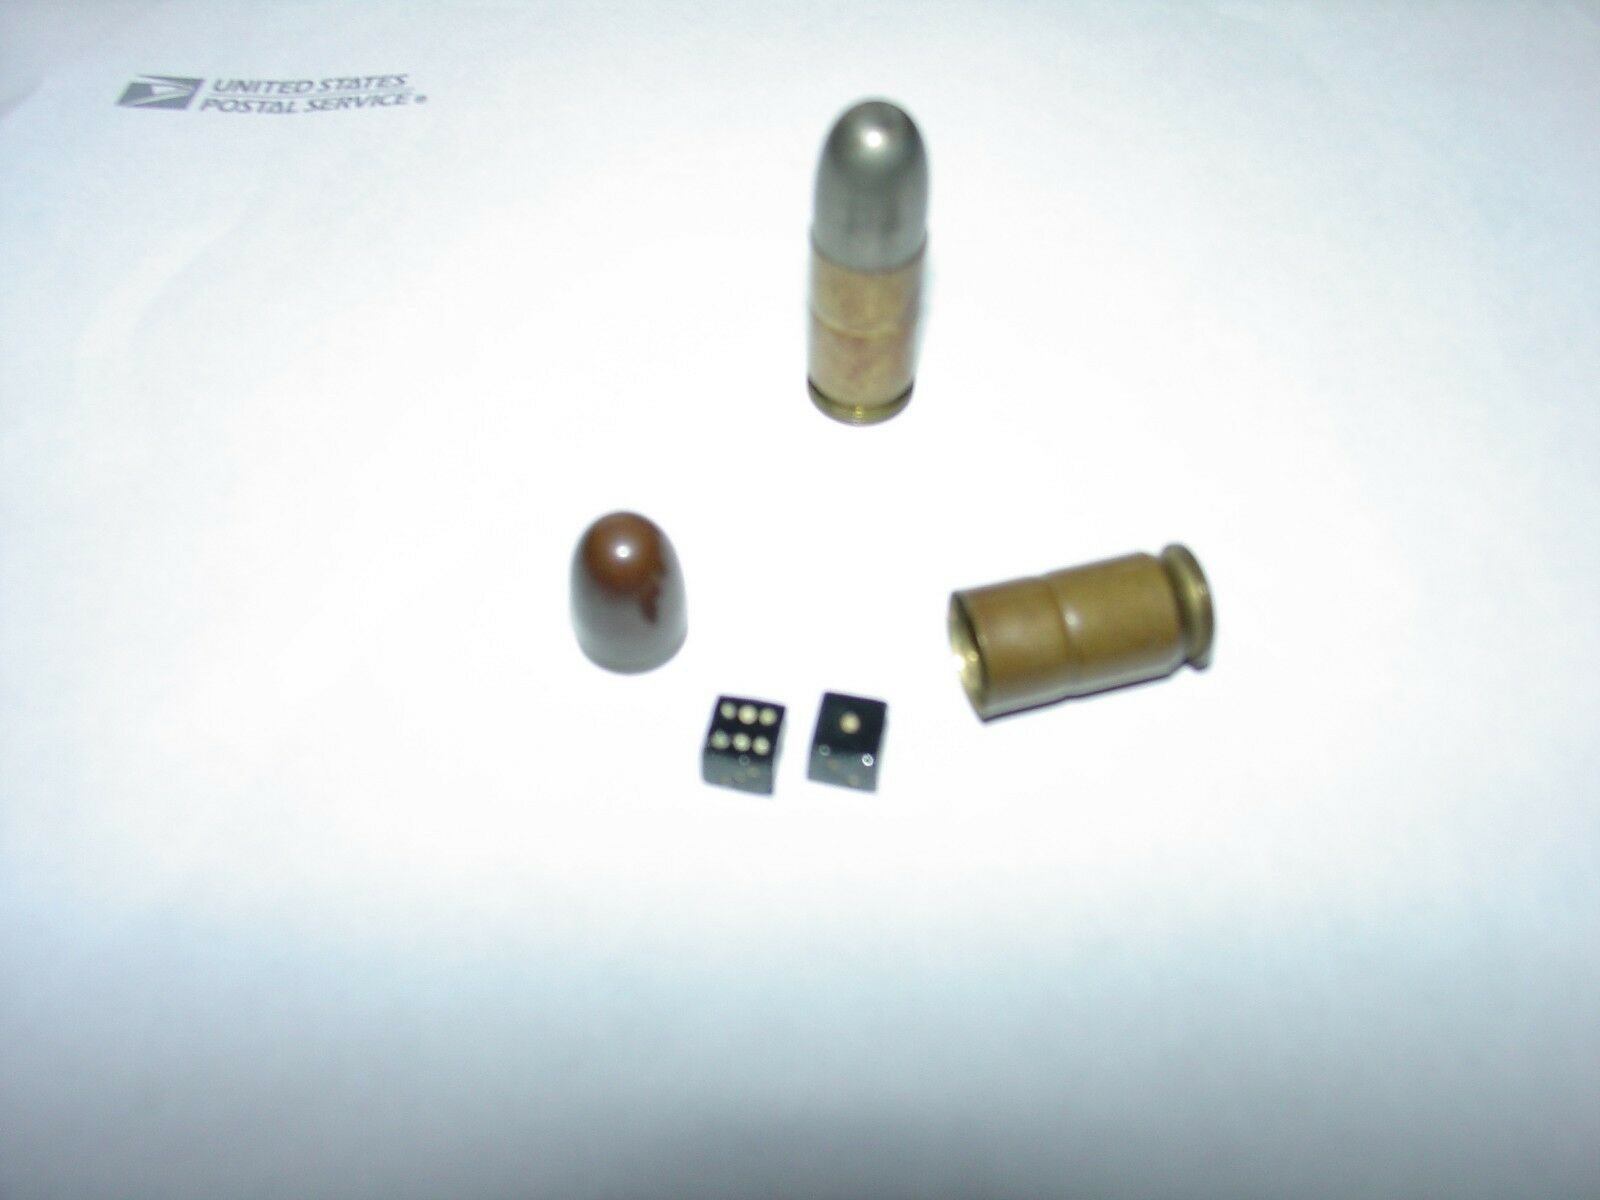 45 cal. Bullet with Dice inside